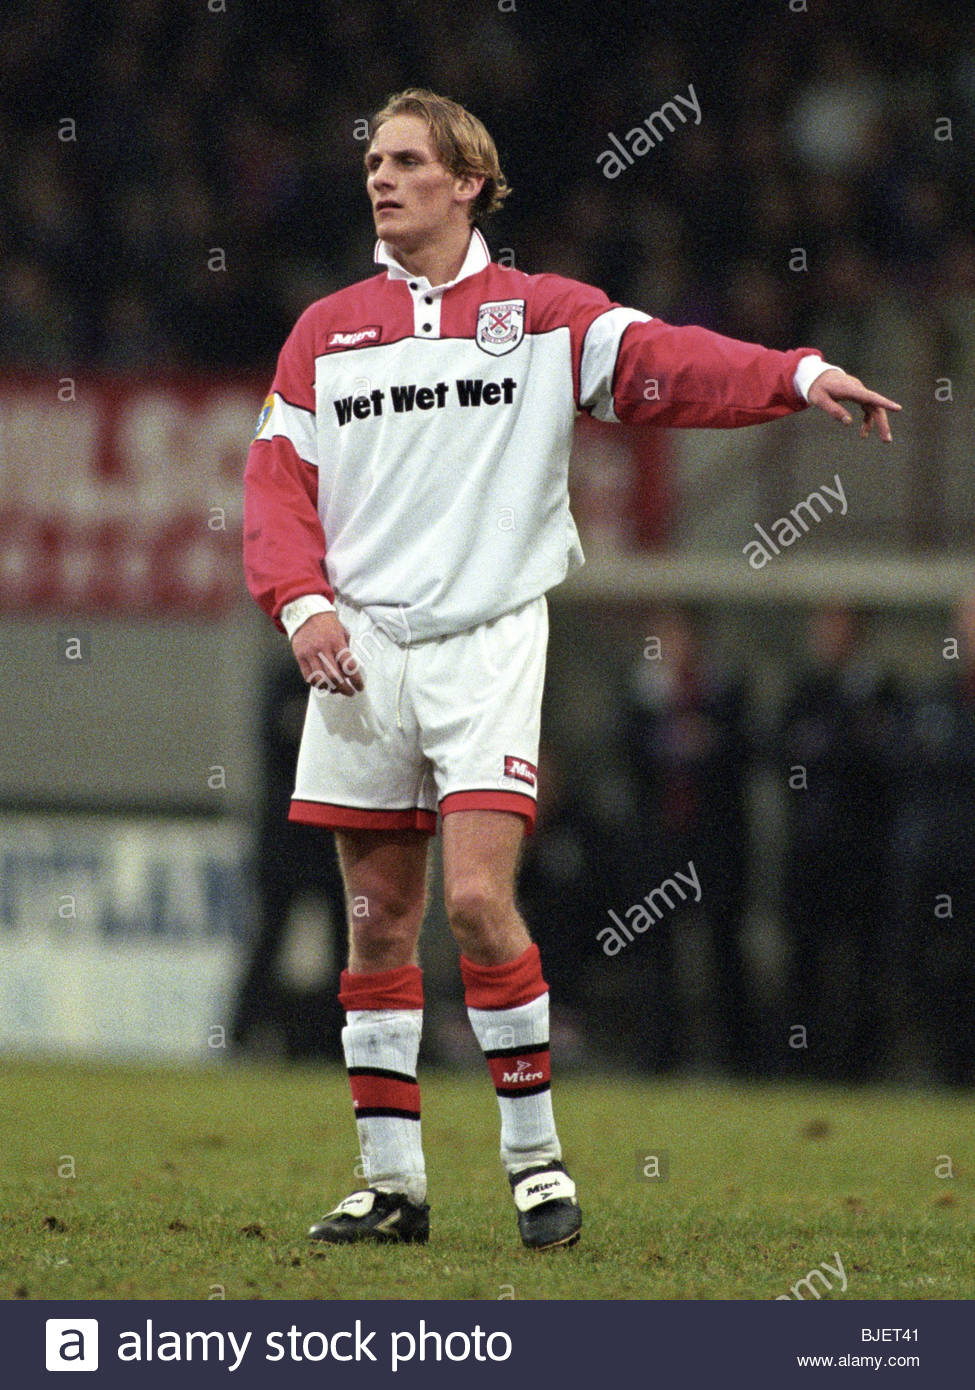 SEASON 1996/1997 CLYDEBANK Gary Teale in action. - Stock Image